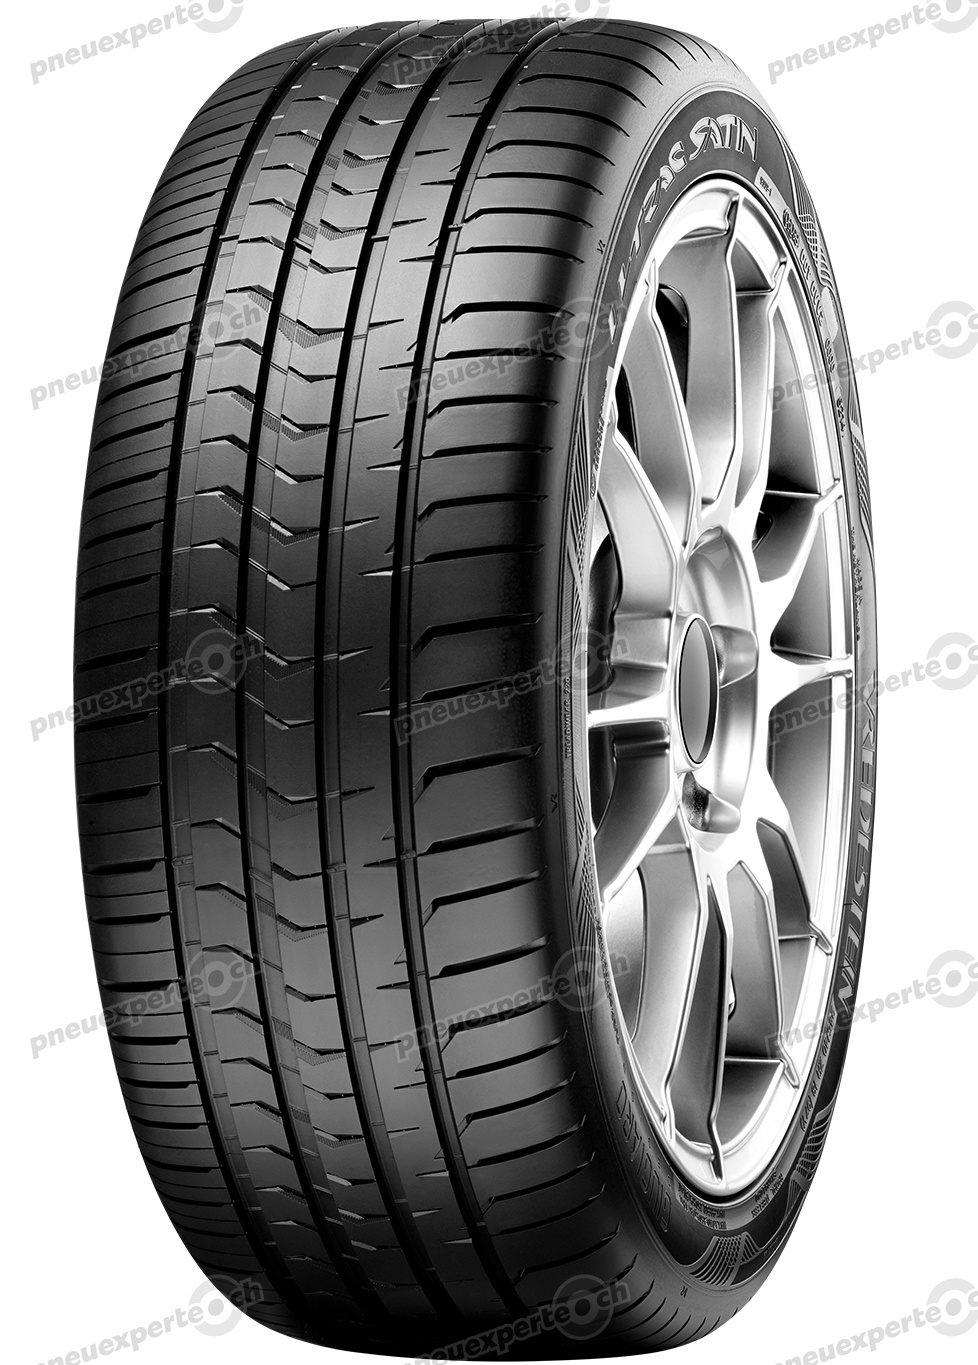 205/55 ZR16 91W Ultrac Satin FSL  Ultrac Satin FSL